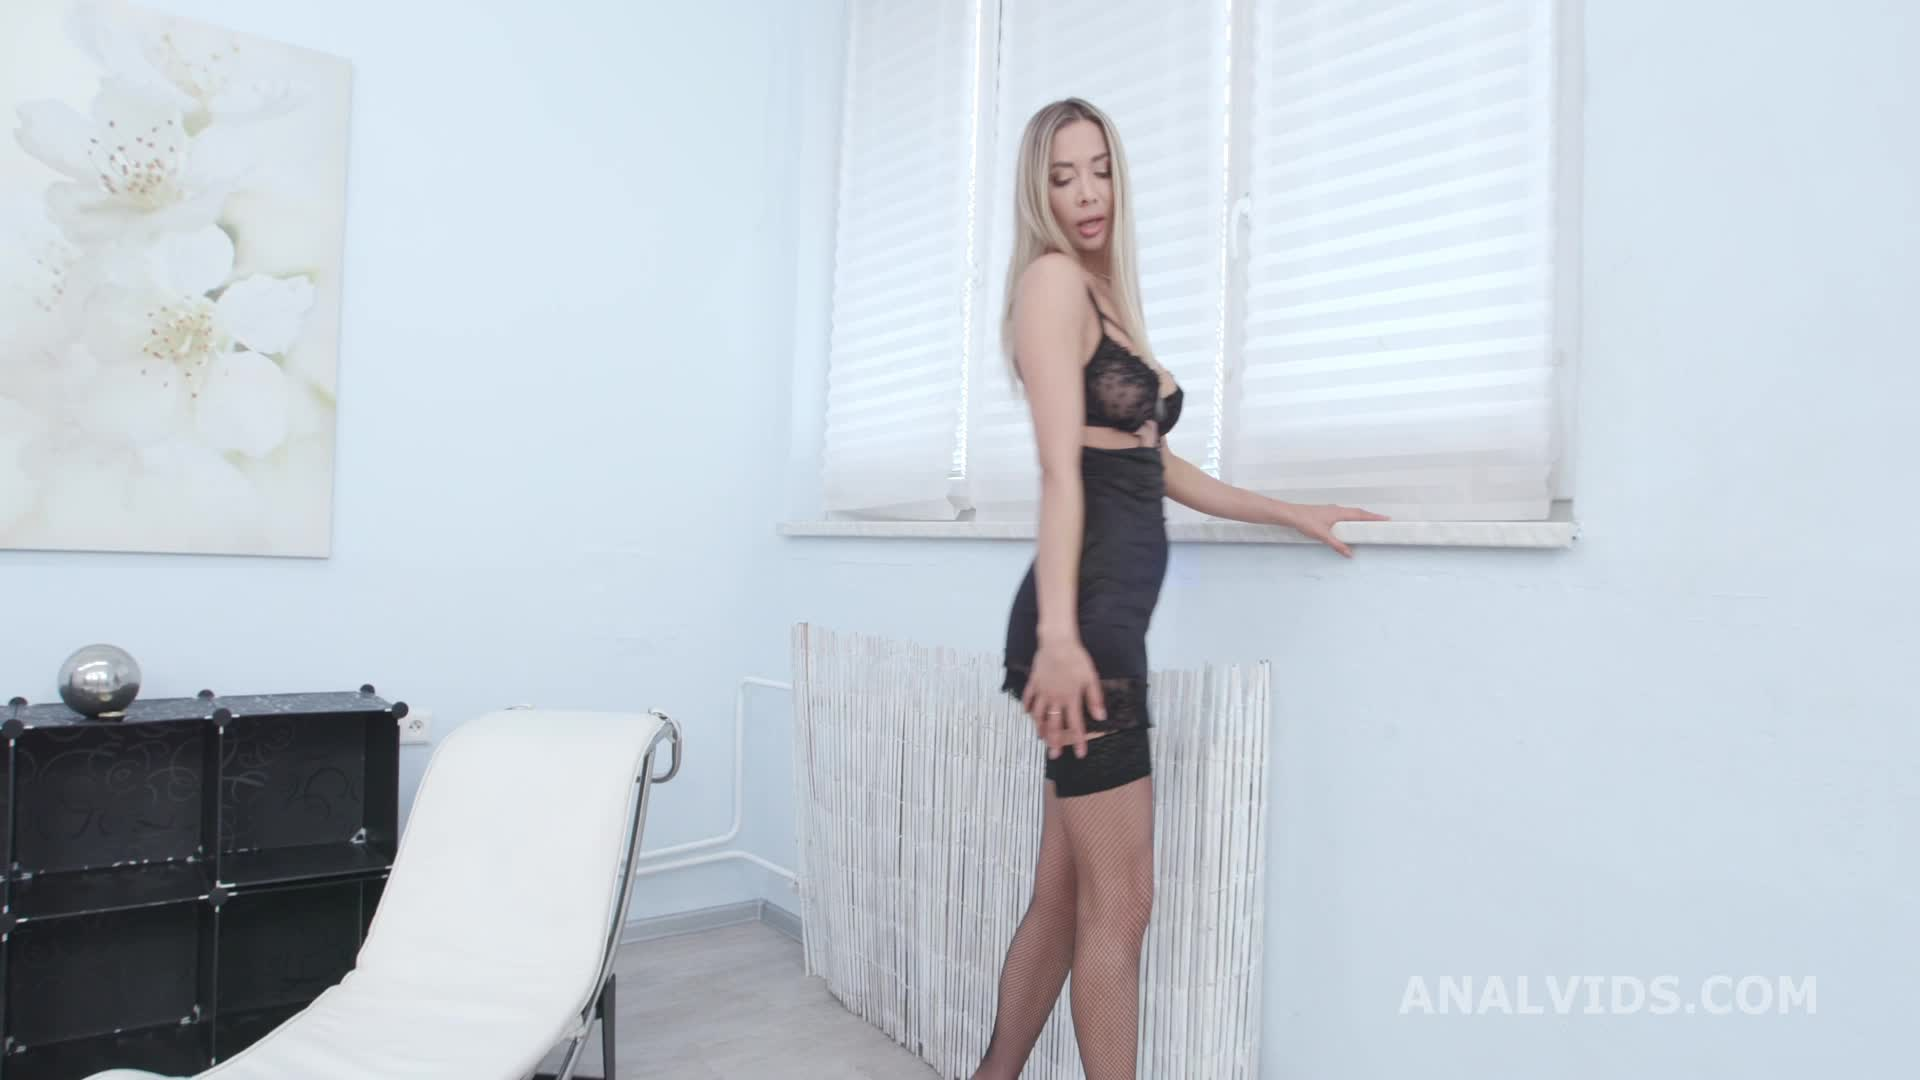 Tall Blonde Babe Gets Gangbanged by 3 White guys and then 3 Black guys with DAP